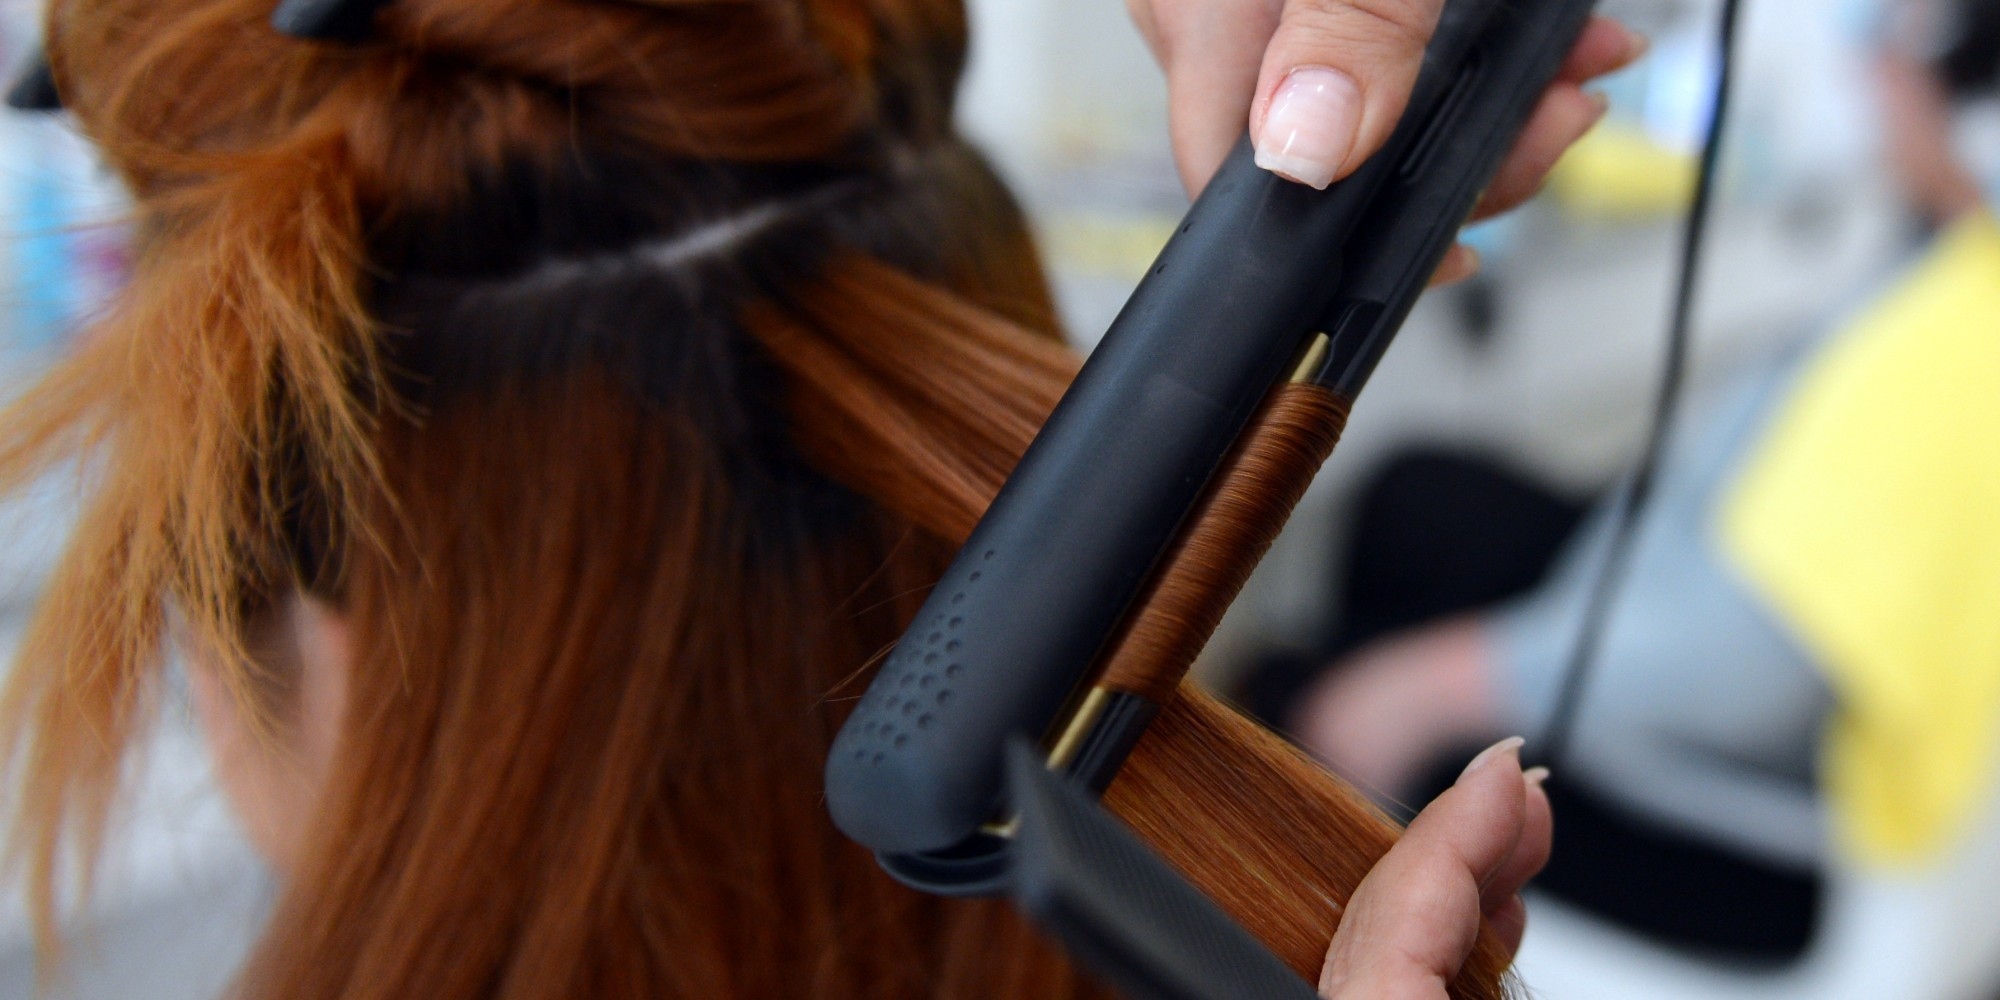 Style Hair Straightener Flat Iron Tips How To Not Let Your Straightener Ruin Your Hair .